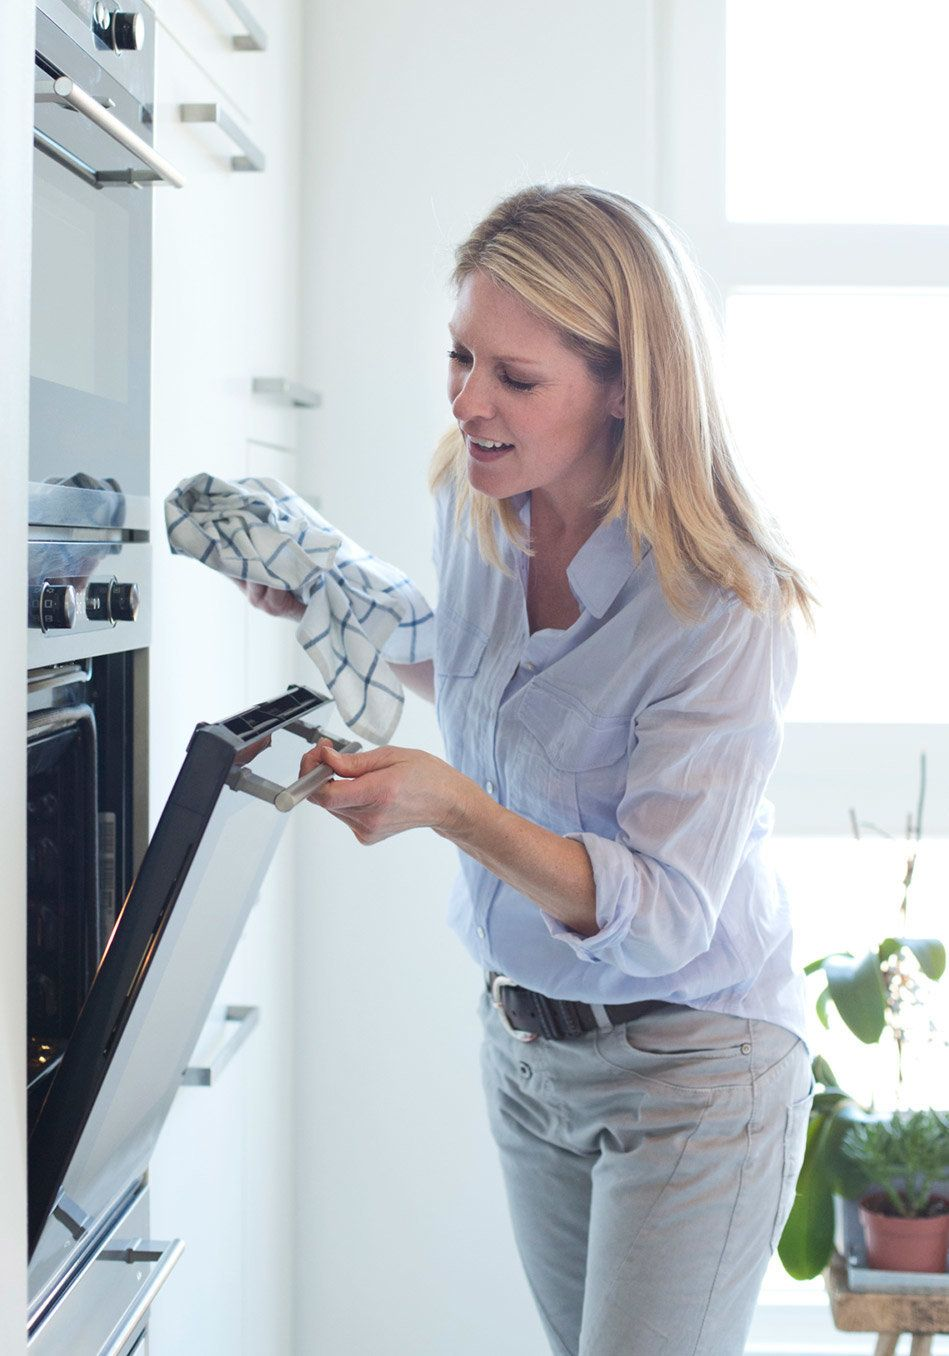 Baking may be a science, but it's a bit of a risk, too, since every oven is different. Molly Hanson, executive pastry chef at